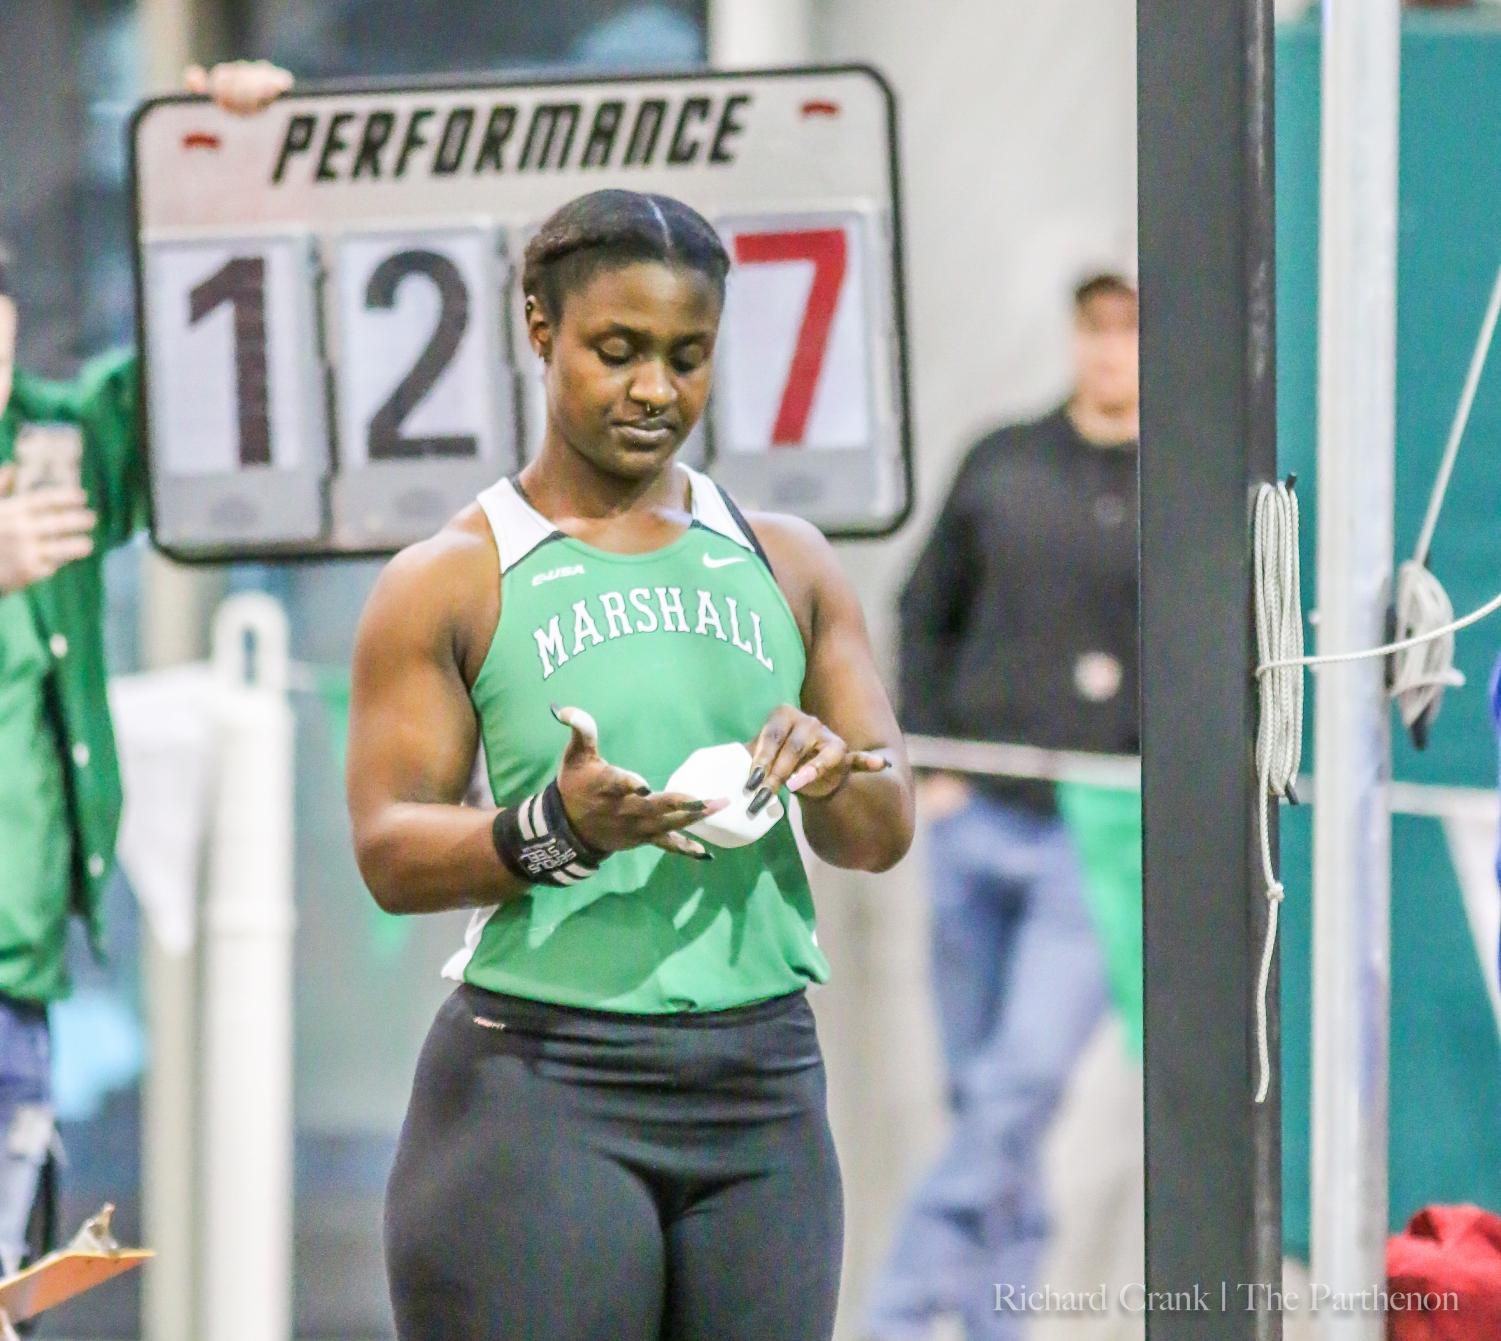 Marshall senior thrower Hasana Clark prepares to participate in the weight throw at the Qdoba Marshall Invitational. Clark set a new personal record in the event with a throw of 20.48 meters.